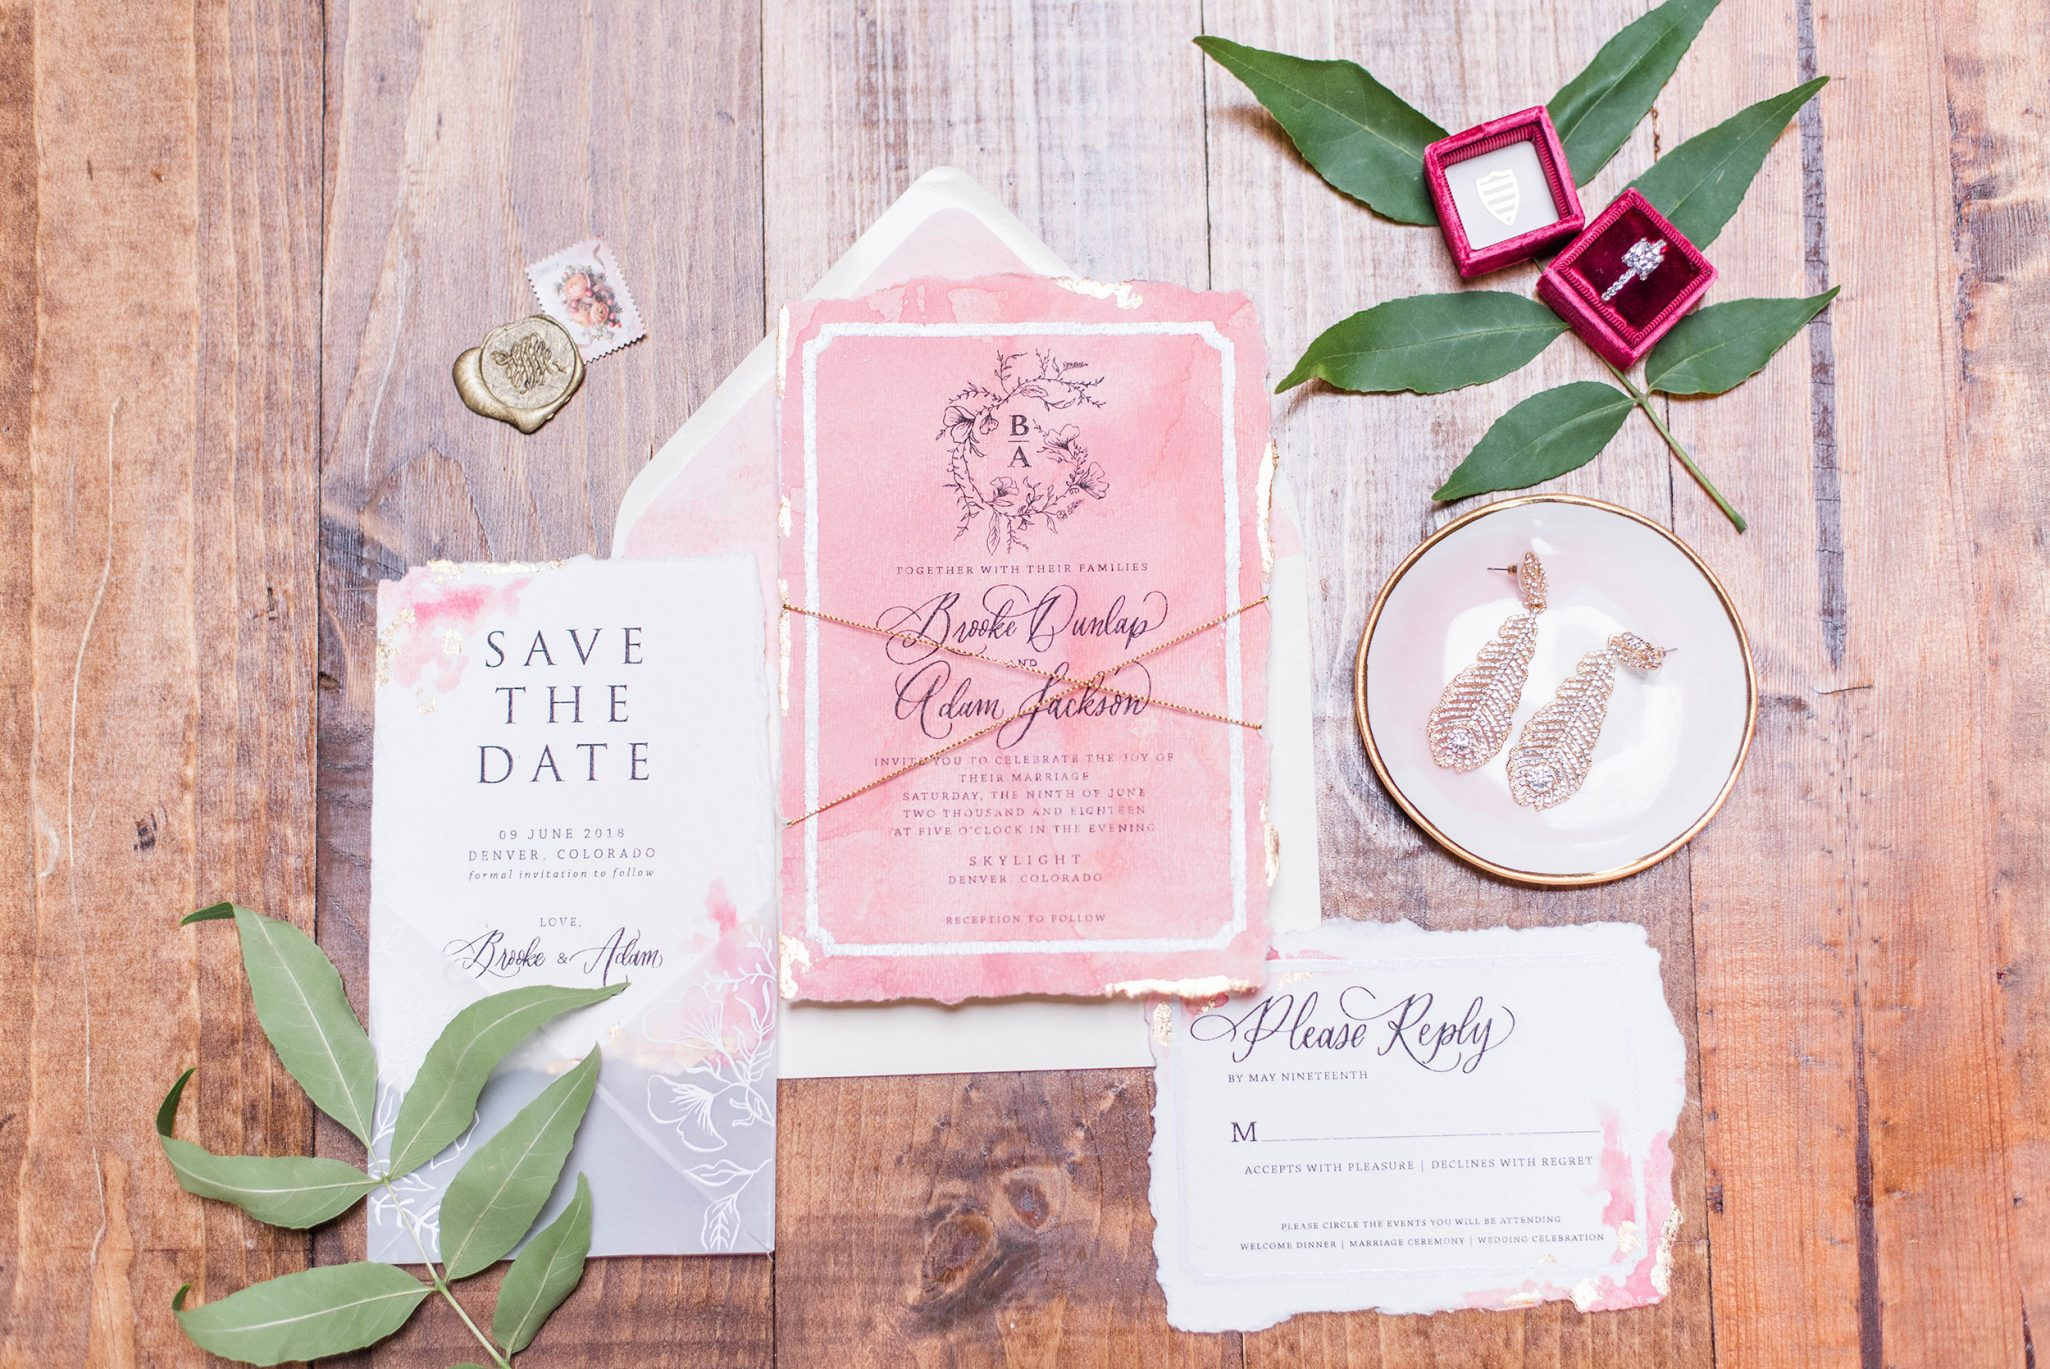 Stationery suite | A Pretty Bridal Editorial, Denver Colorado